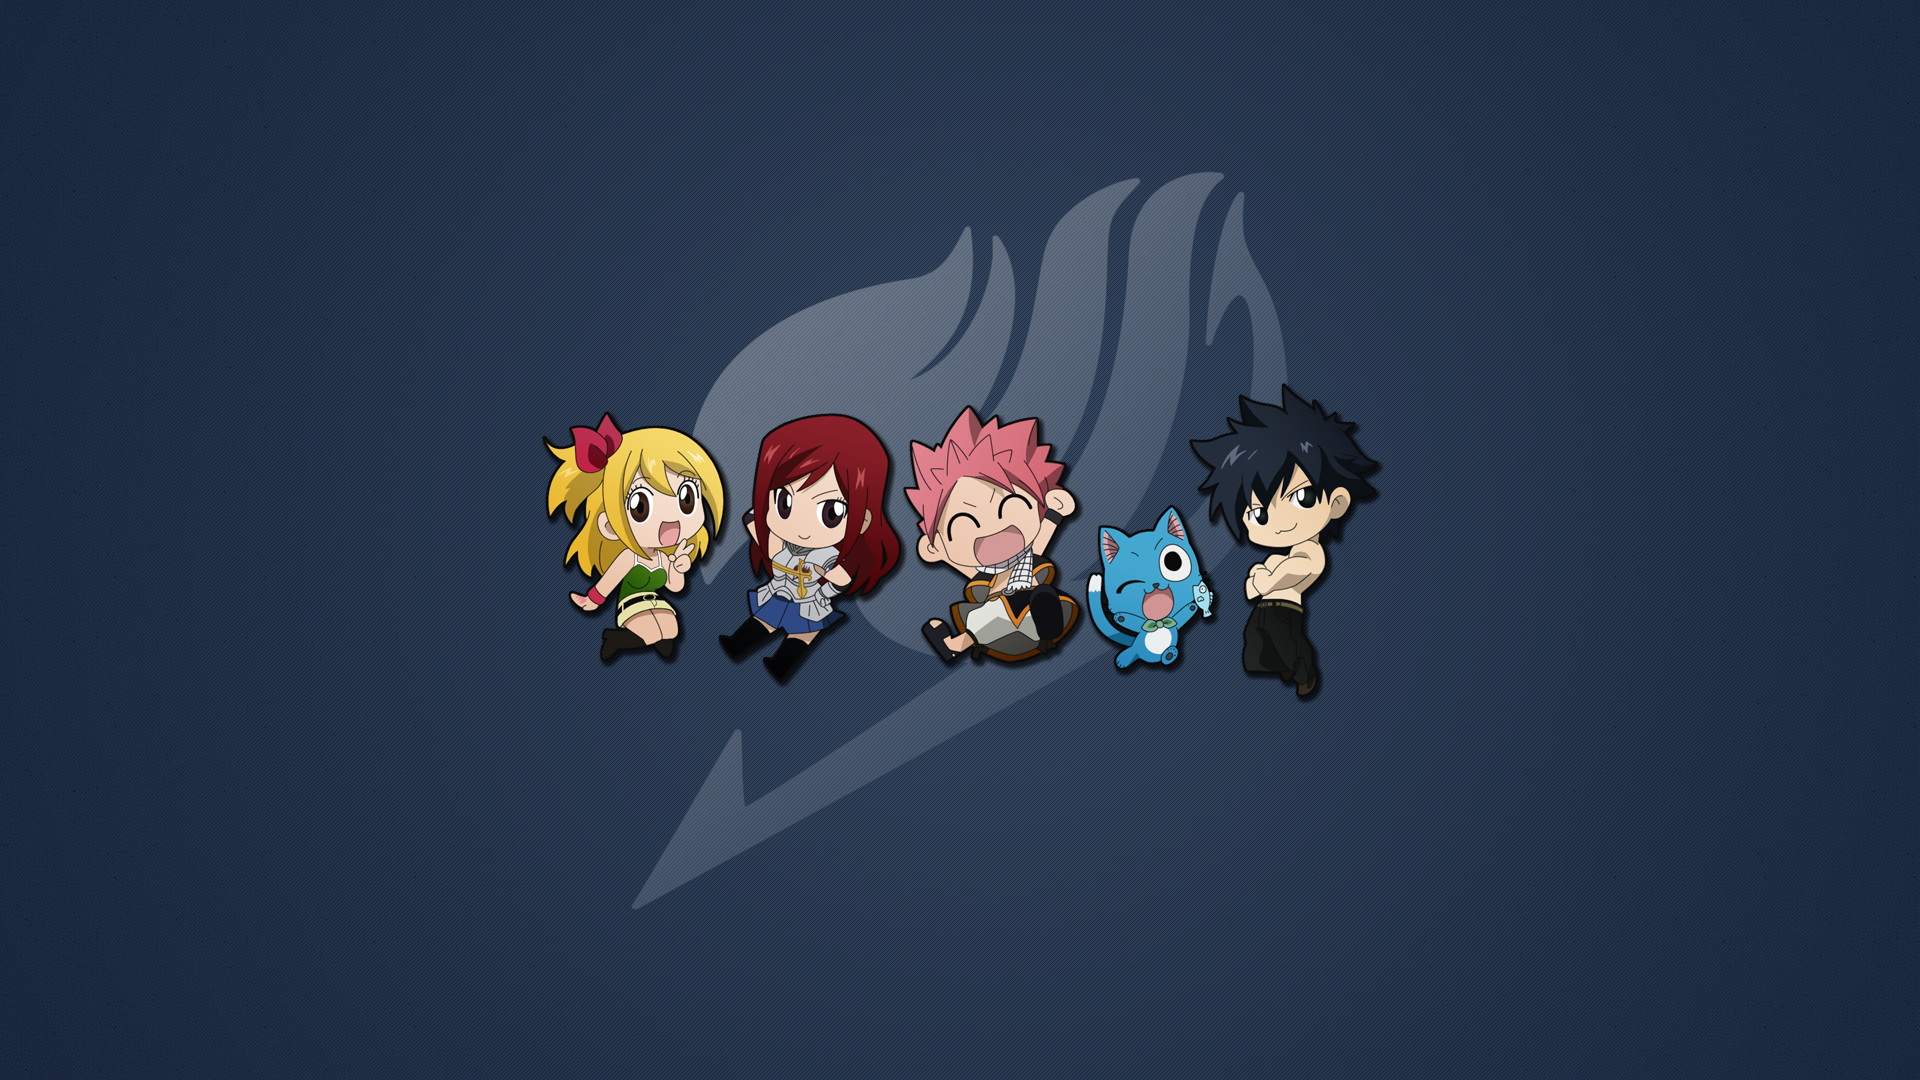 chibi erza scarlet fairy tail gray fullbuster happy fairy